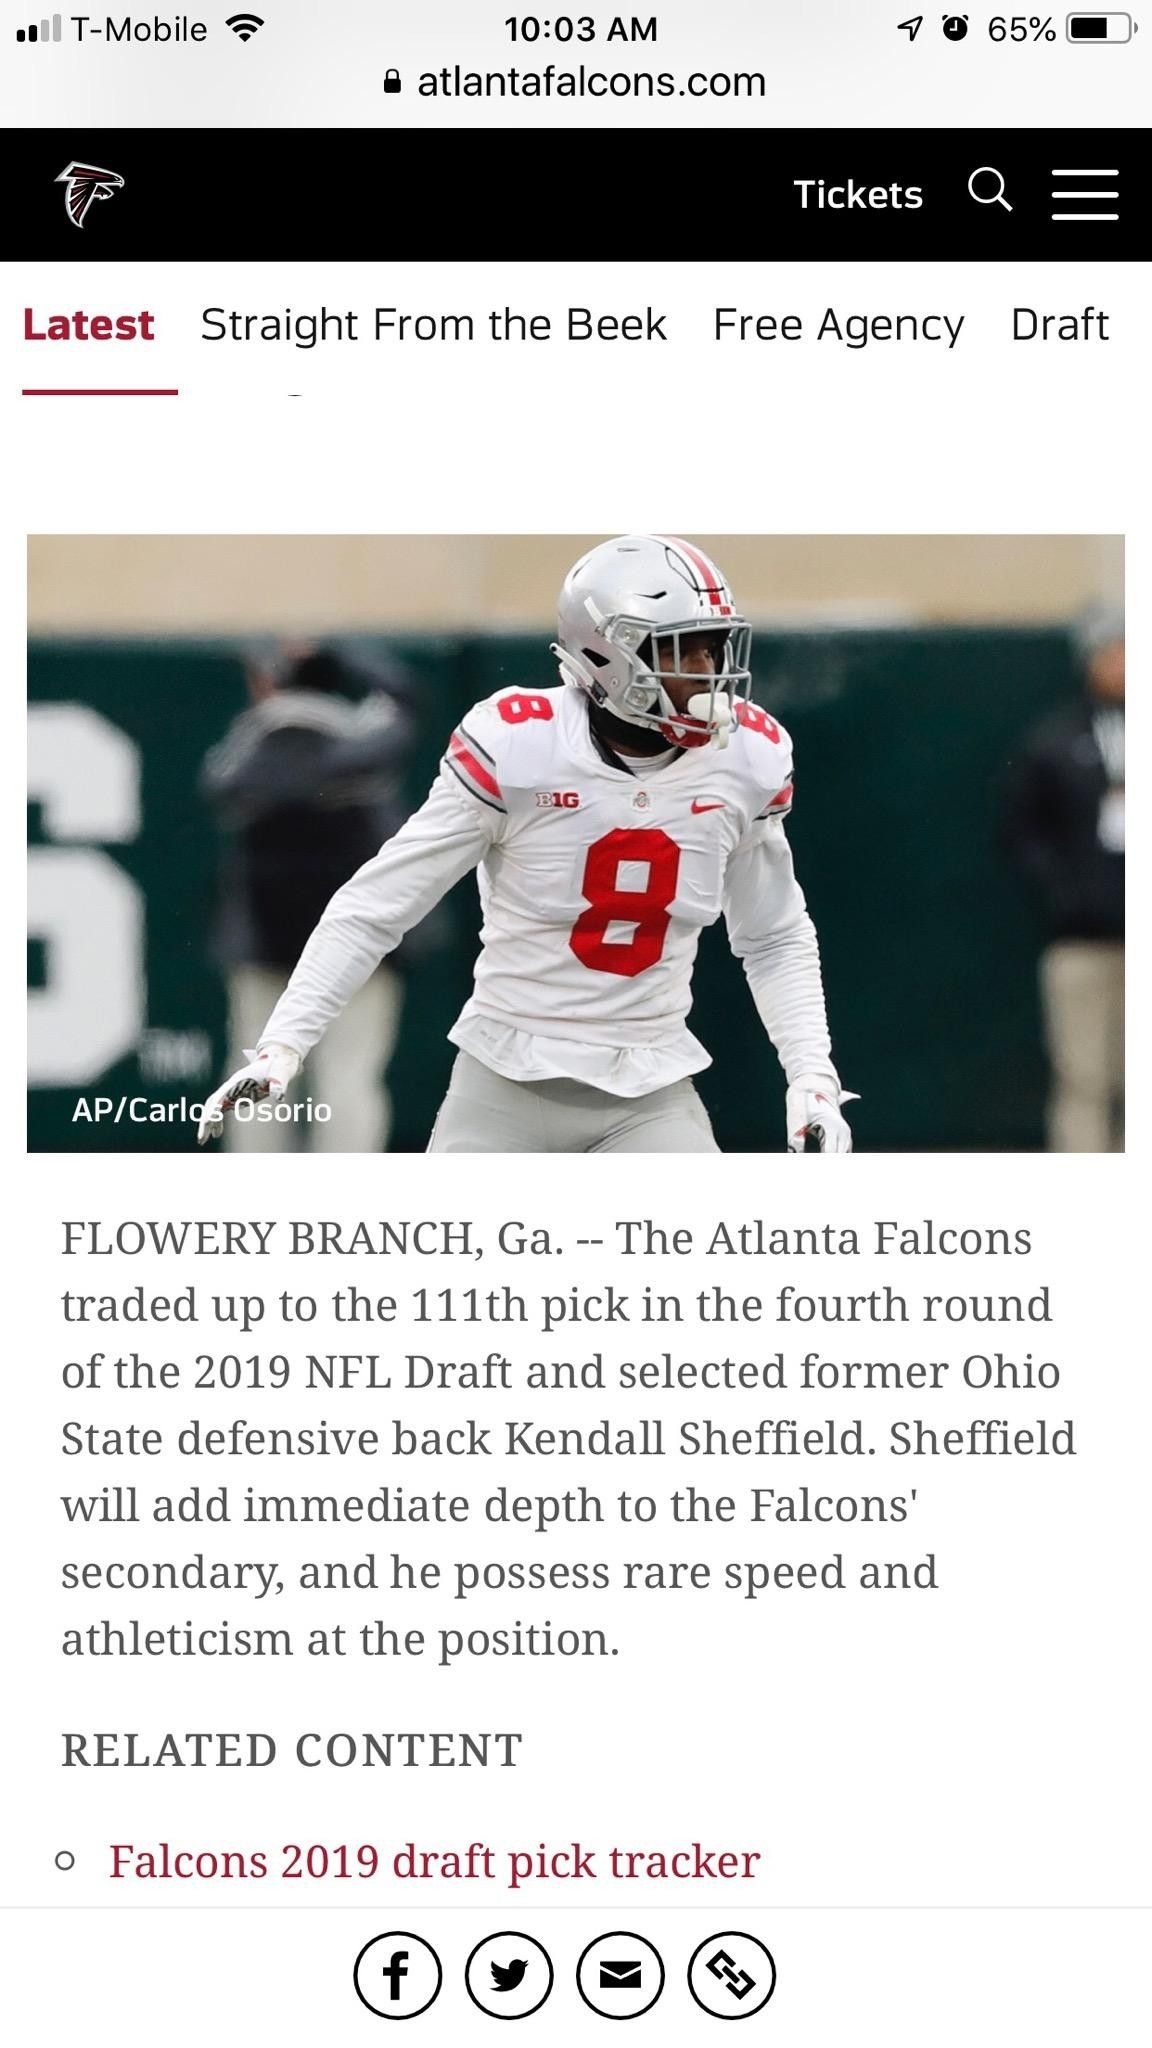 Pin By Sheila Sheffield On Kendall Defensive Back Nfl Draft Ohio State